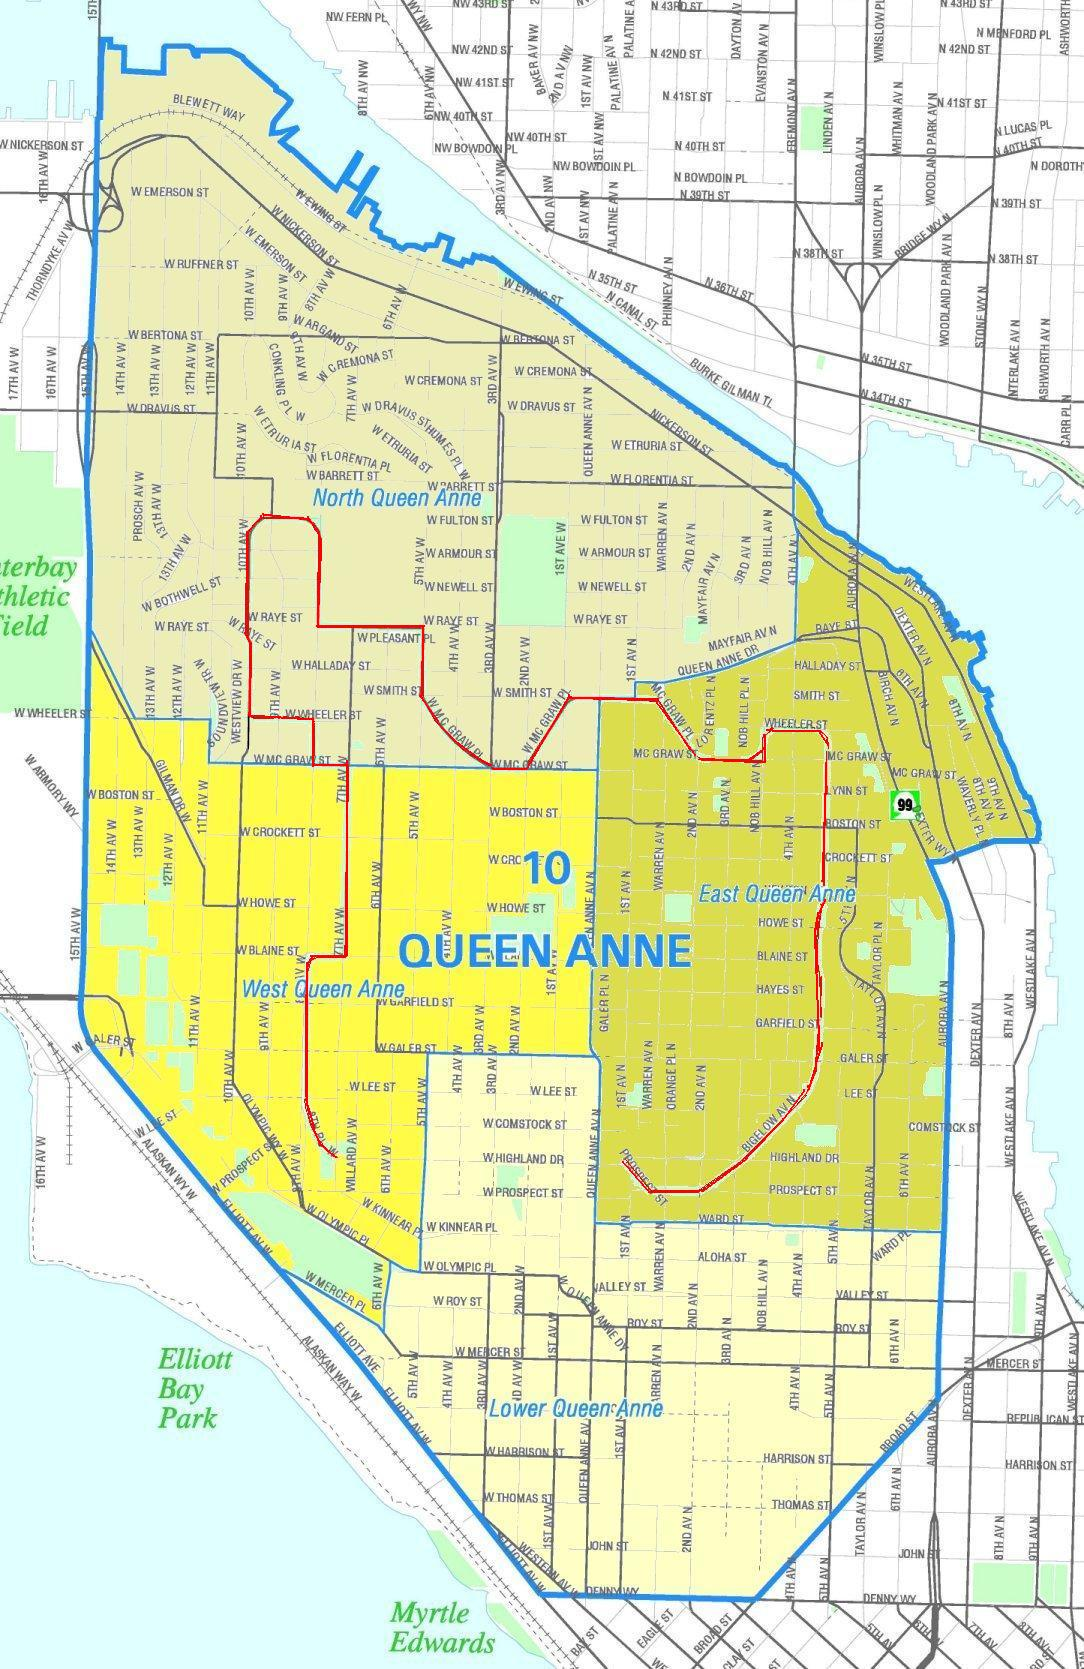 Queen Anne Boulevard Wikipedia